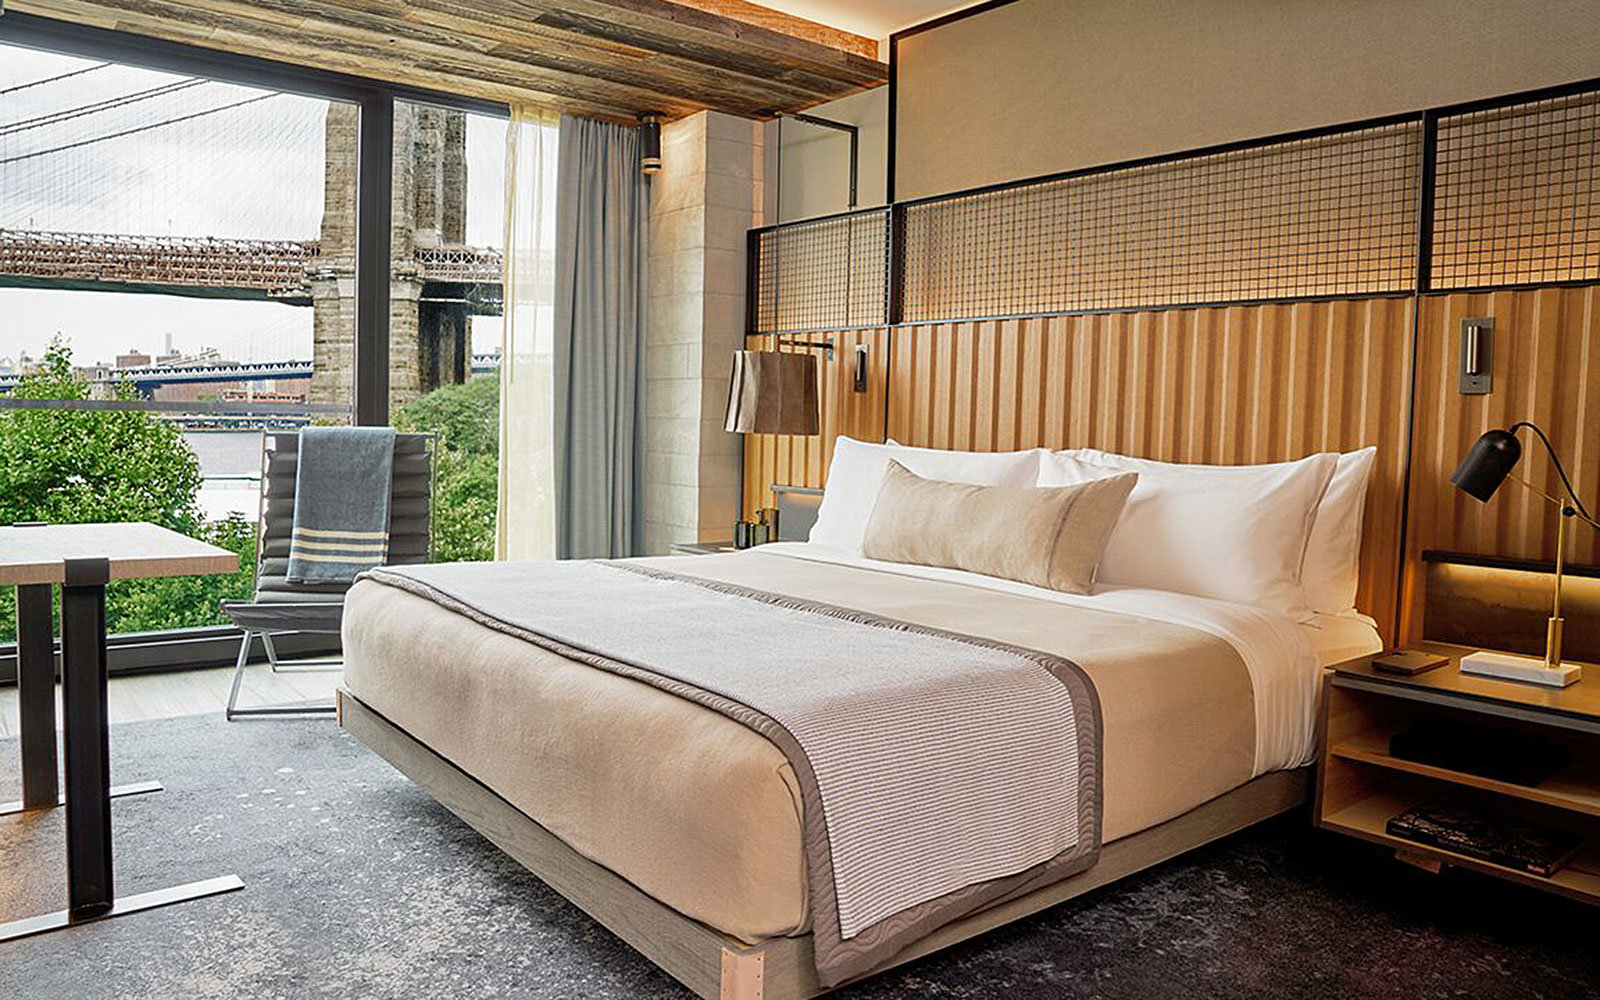 hotel openings to watch out for in 2017 | travel + leisure